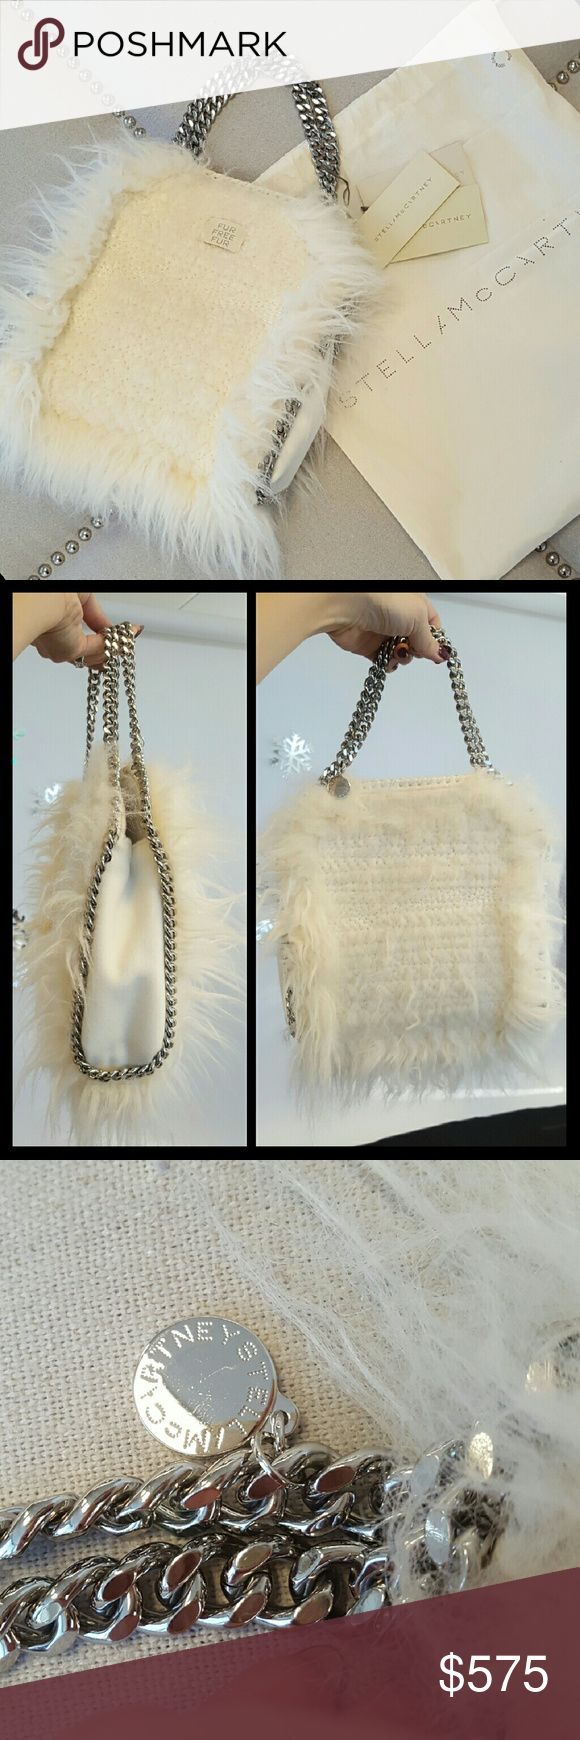 """Stella McCartney Faux Fur Falabella New! Authentic Stella McCartney woven faux-fur (modacrylic) shoulder bag. IVORY Signature chain and whipstitch trim. Top handles; hanging logo disc charm. Button closure. 10.3""""H x 9""""W x 3.5""""D. Bag weight: 1.3 lb. """"Falabella"""" is made in Italy. About Stella McCartney: Central Saint Martins alumnus Stella McCartney launched her own label in 2001, after completing an apprenticeship on Savile Row. A highlight of Paris Fashion Week. Comes with dust bag and card…"""